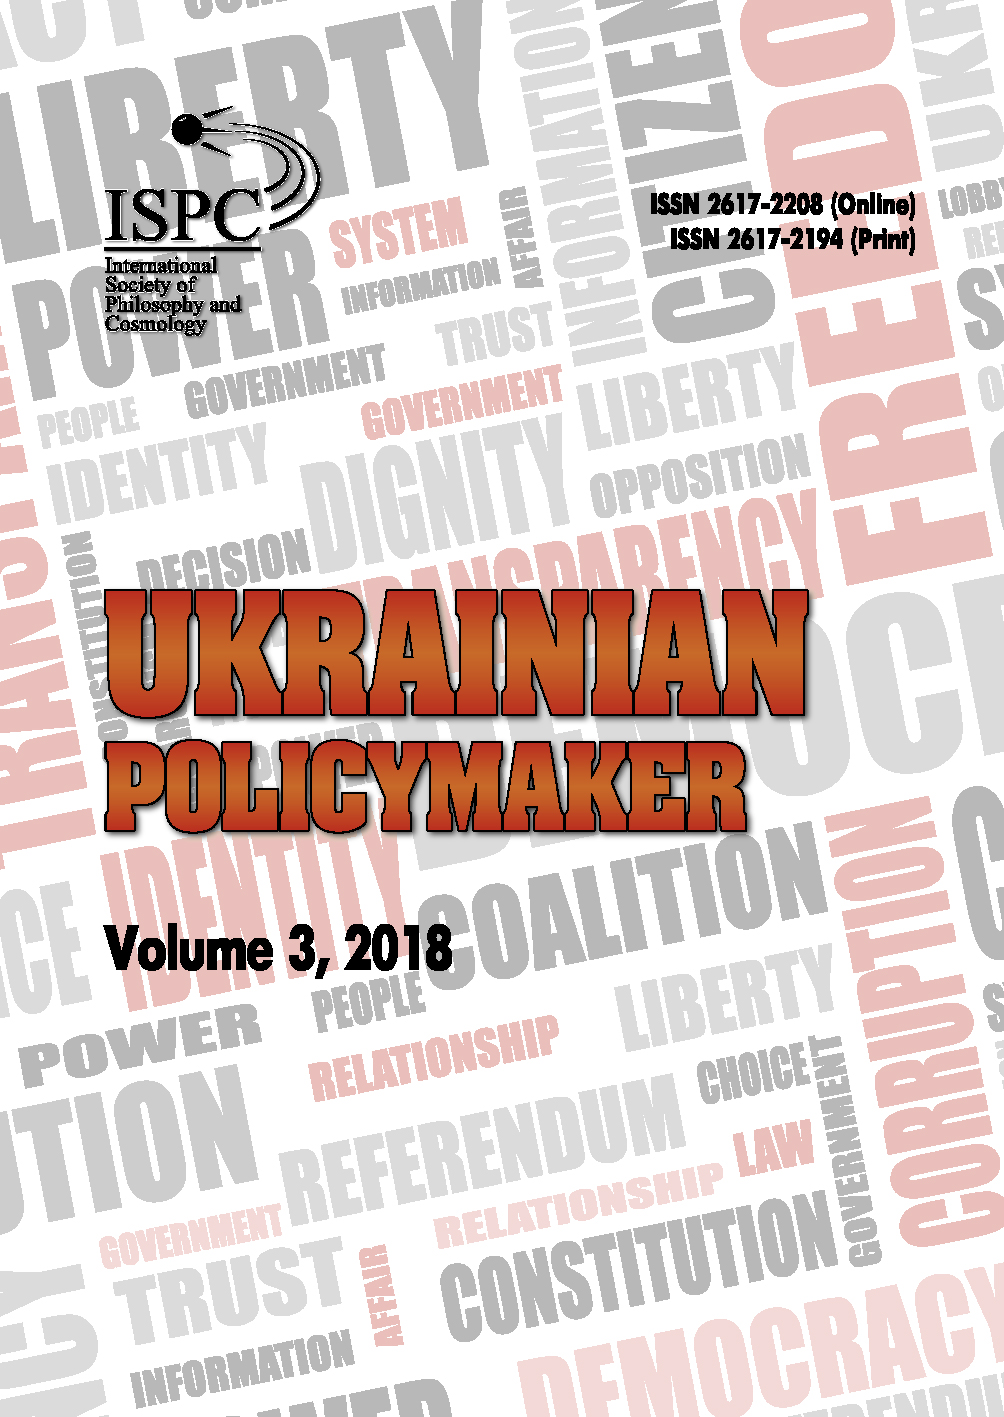 Ukrainian Policymaker Cover Image